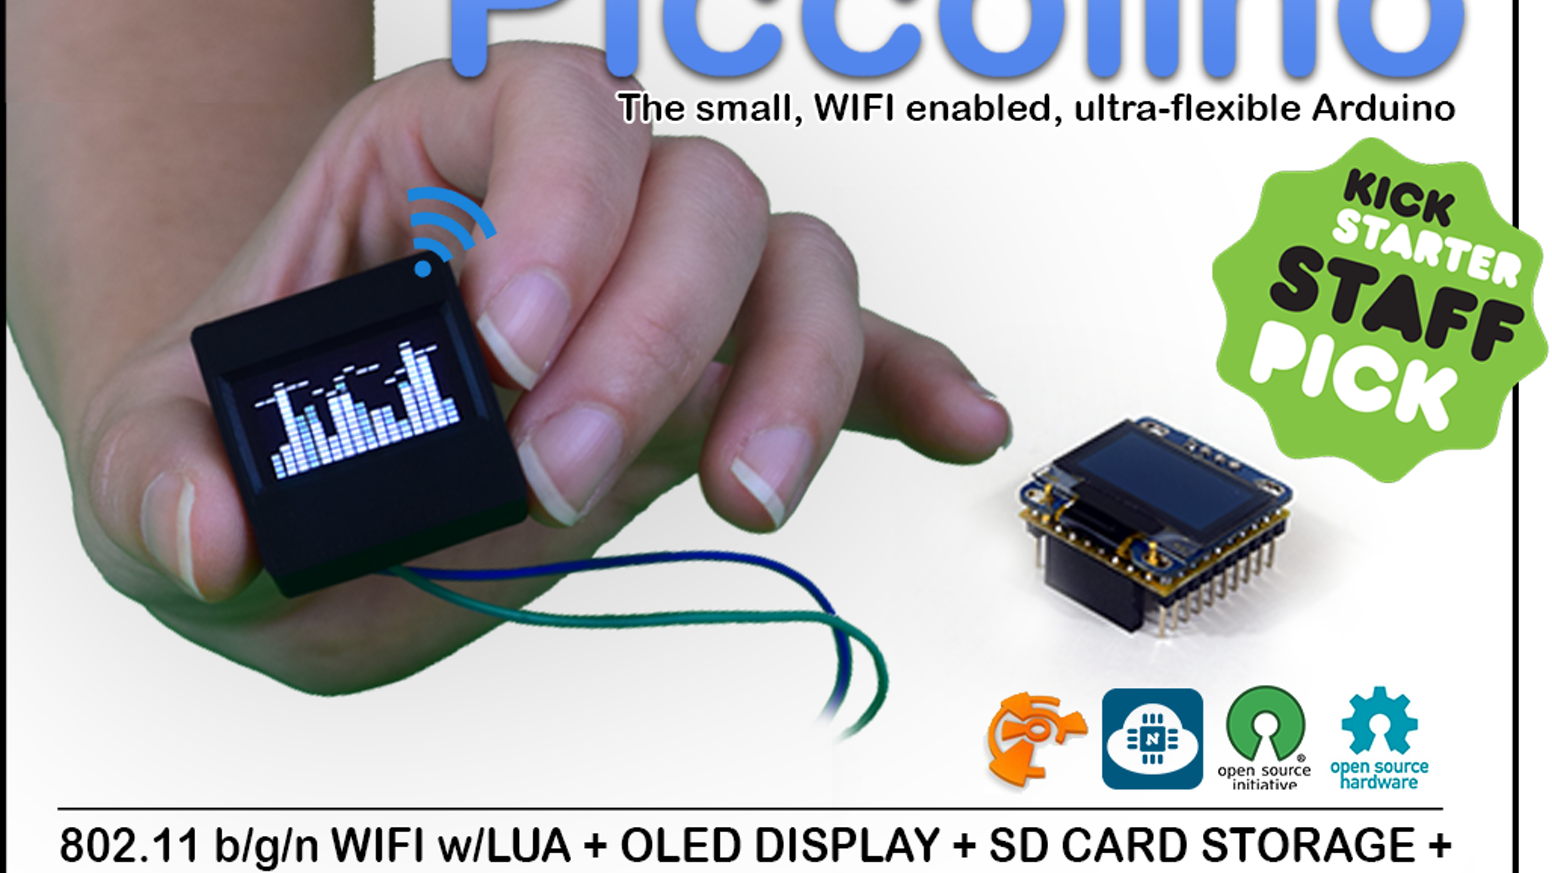 World's first compact Arduino with integrated OLED+WIFI+SD CARD+32K SRAM for your 21st century projects! Play, create, embed, invent.